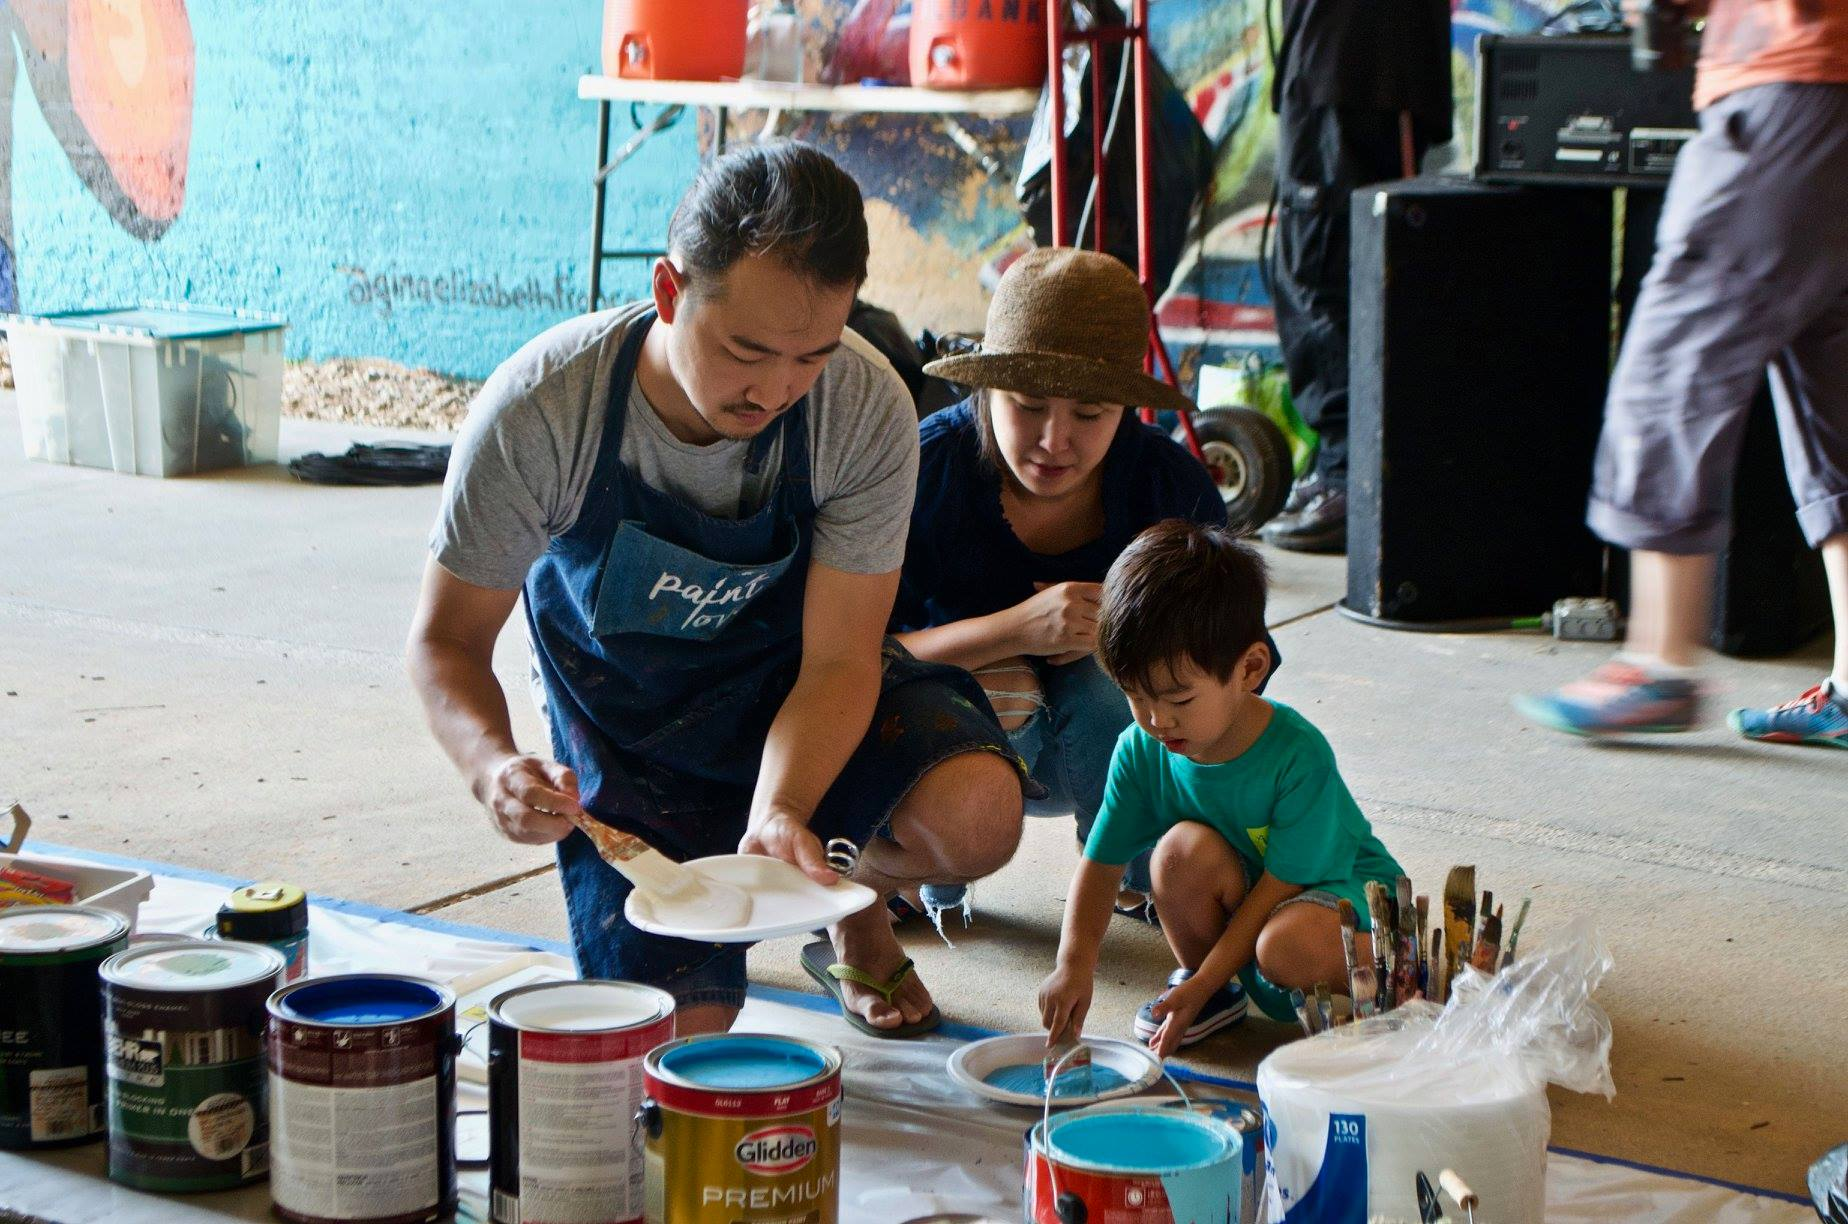 Paint Love at Family Paint Day on the Atlanta Beltline Westside Trail